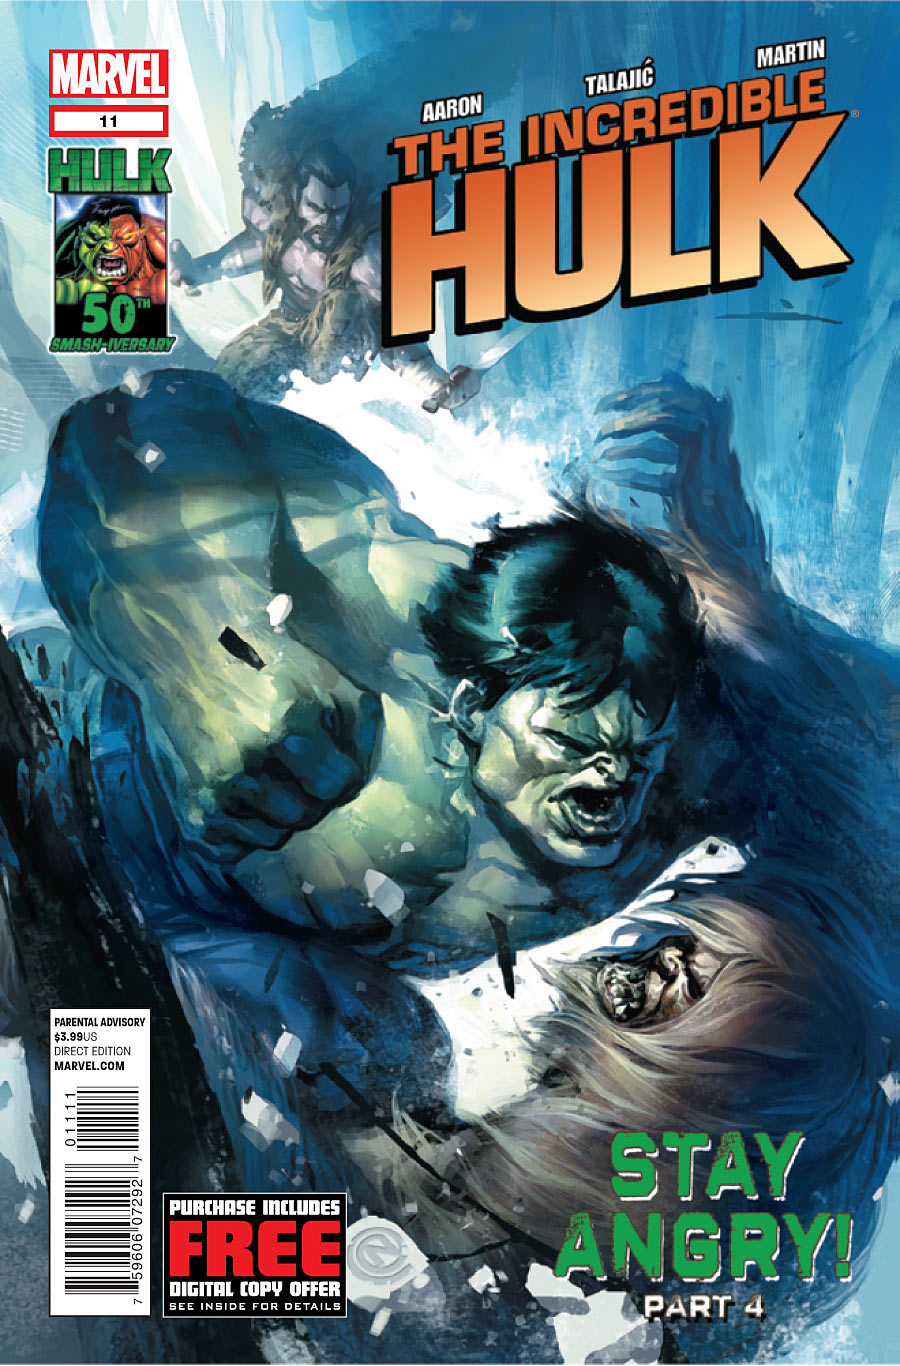 Incredible Hulk, The issue 11.00